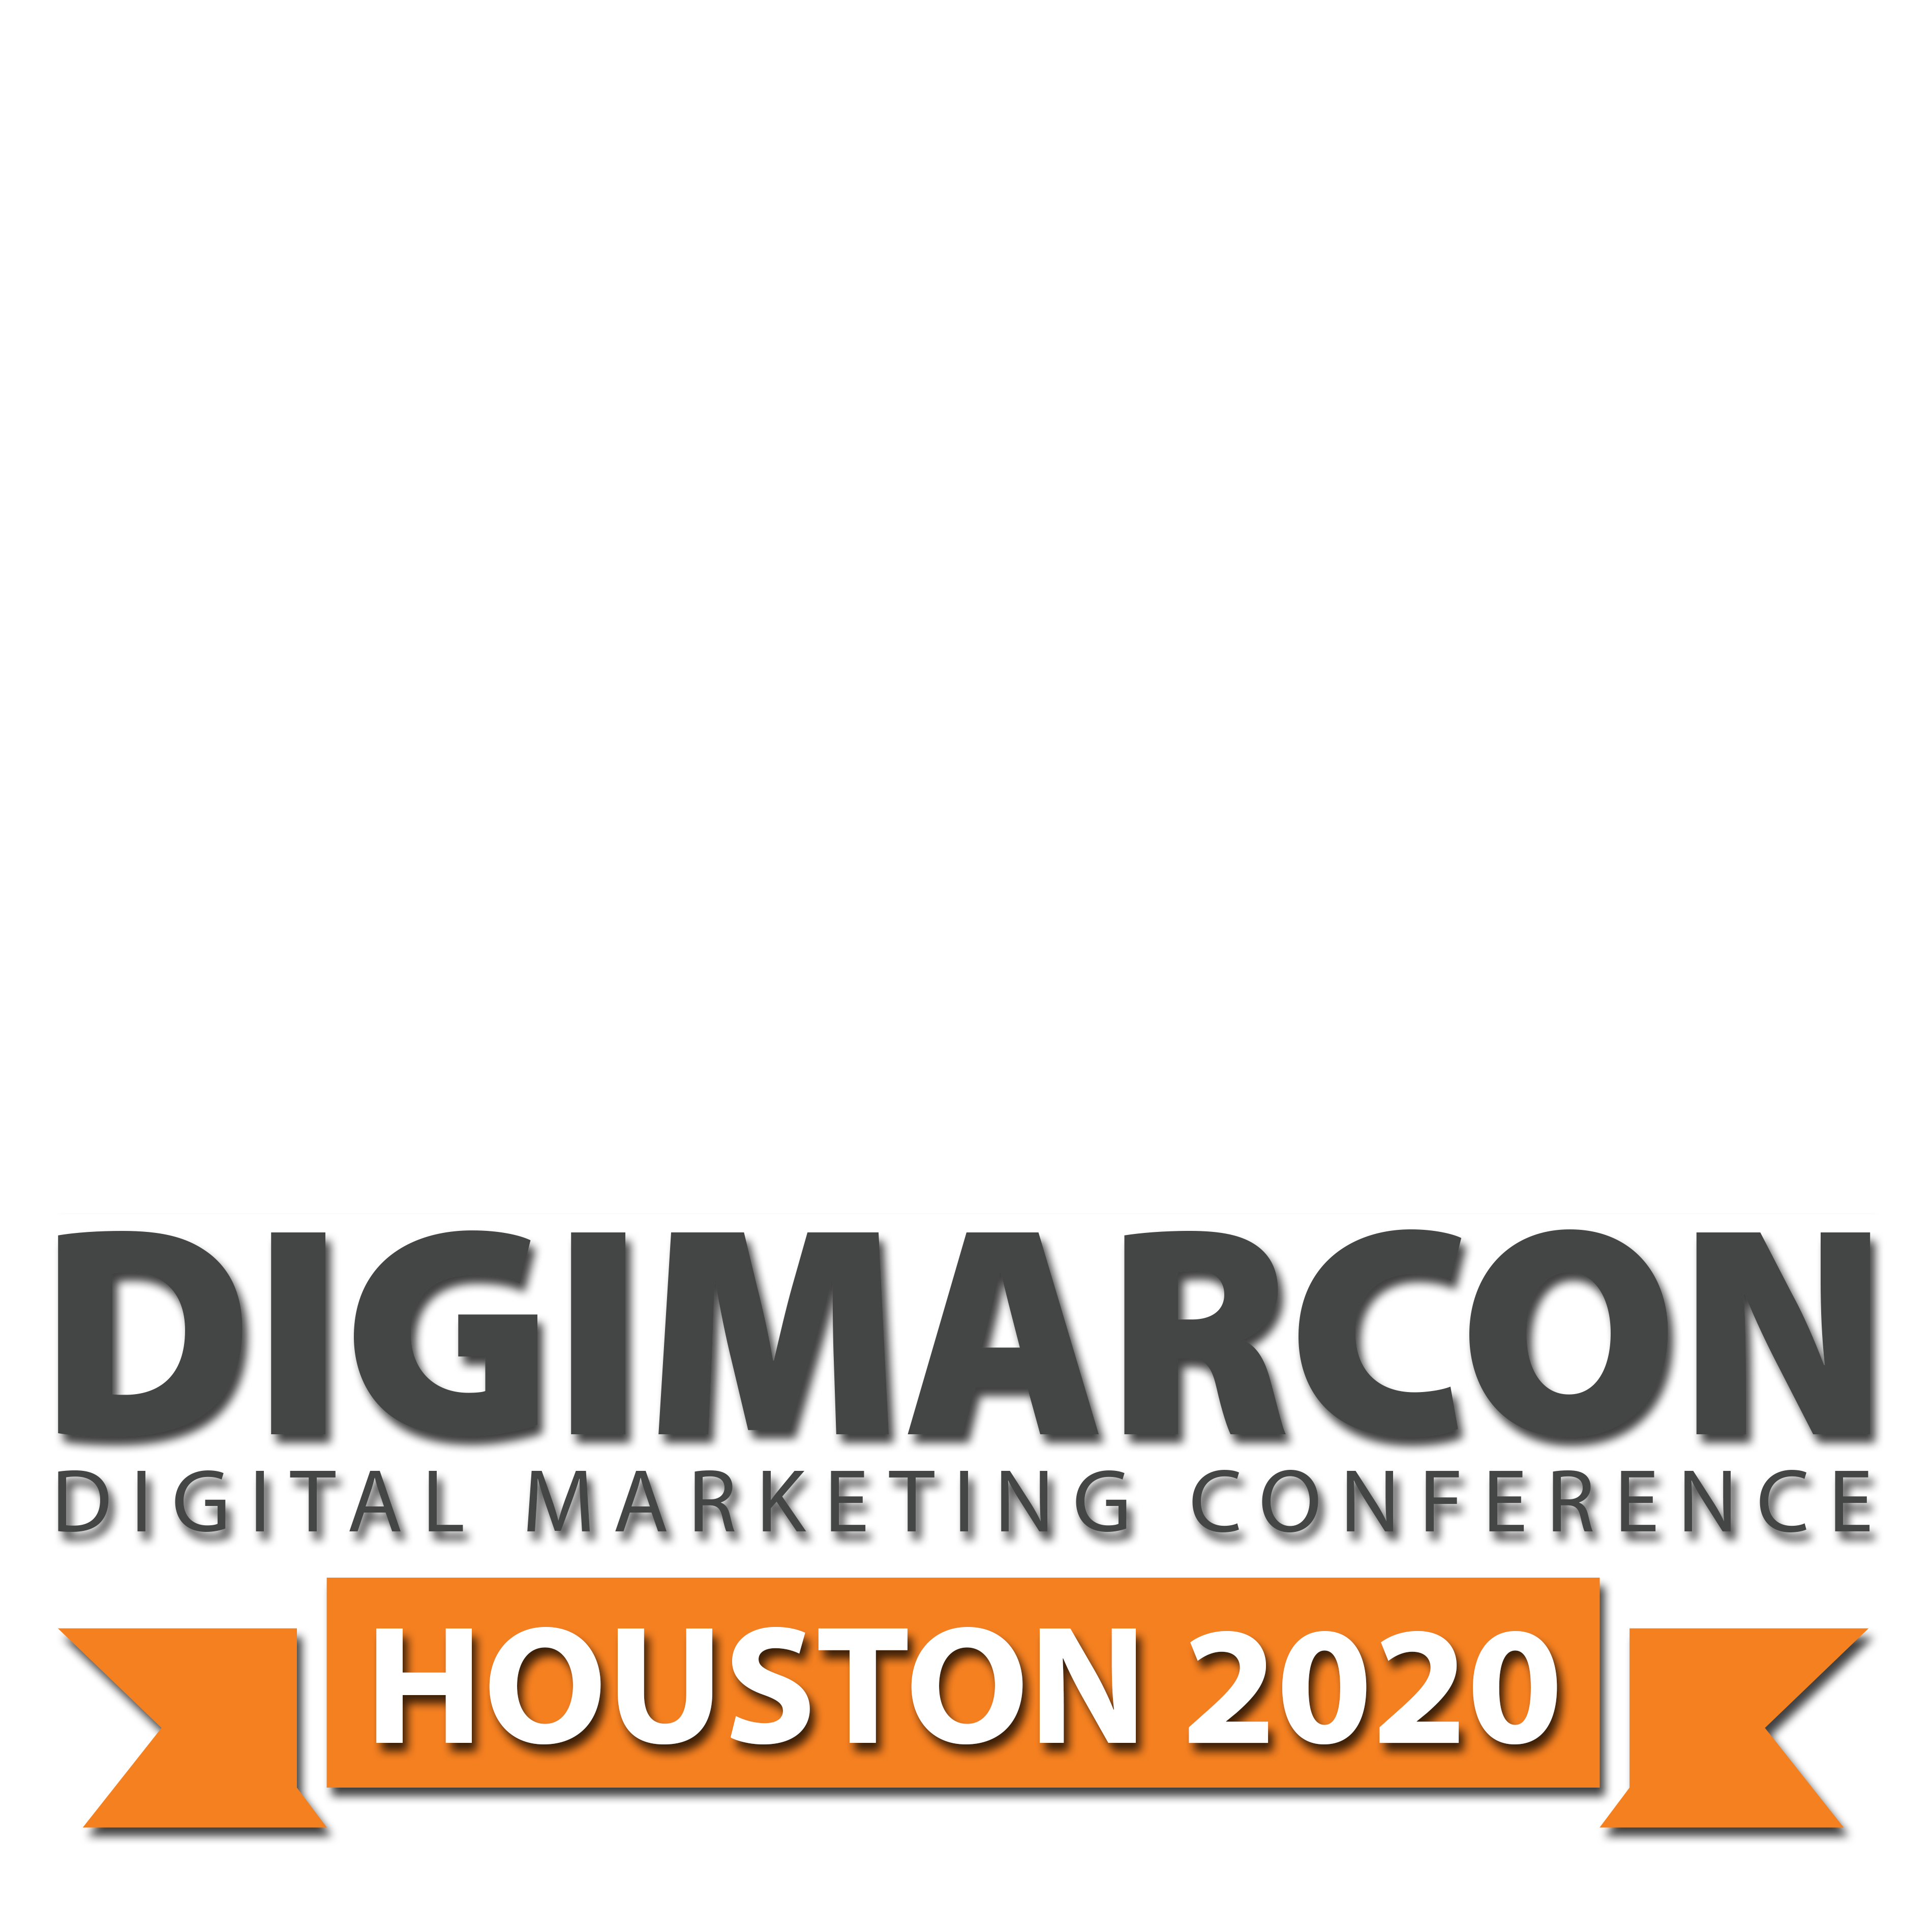 DigiMarCon Houston 2020 – Digital Marketing Conference & Exhibition